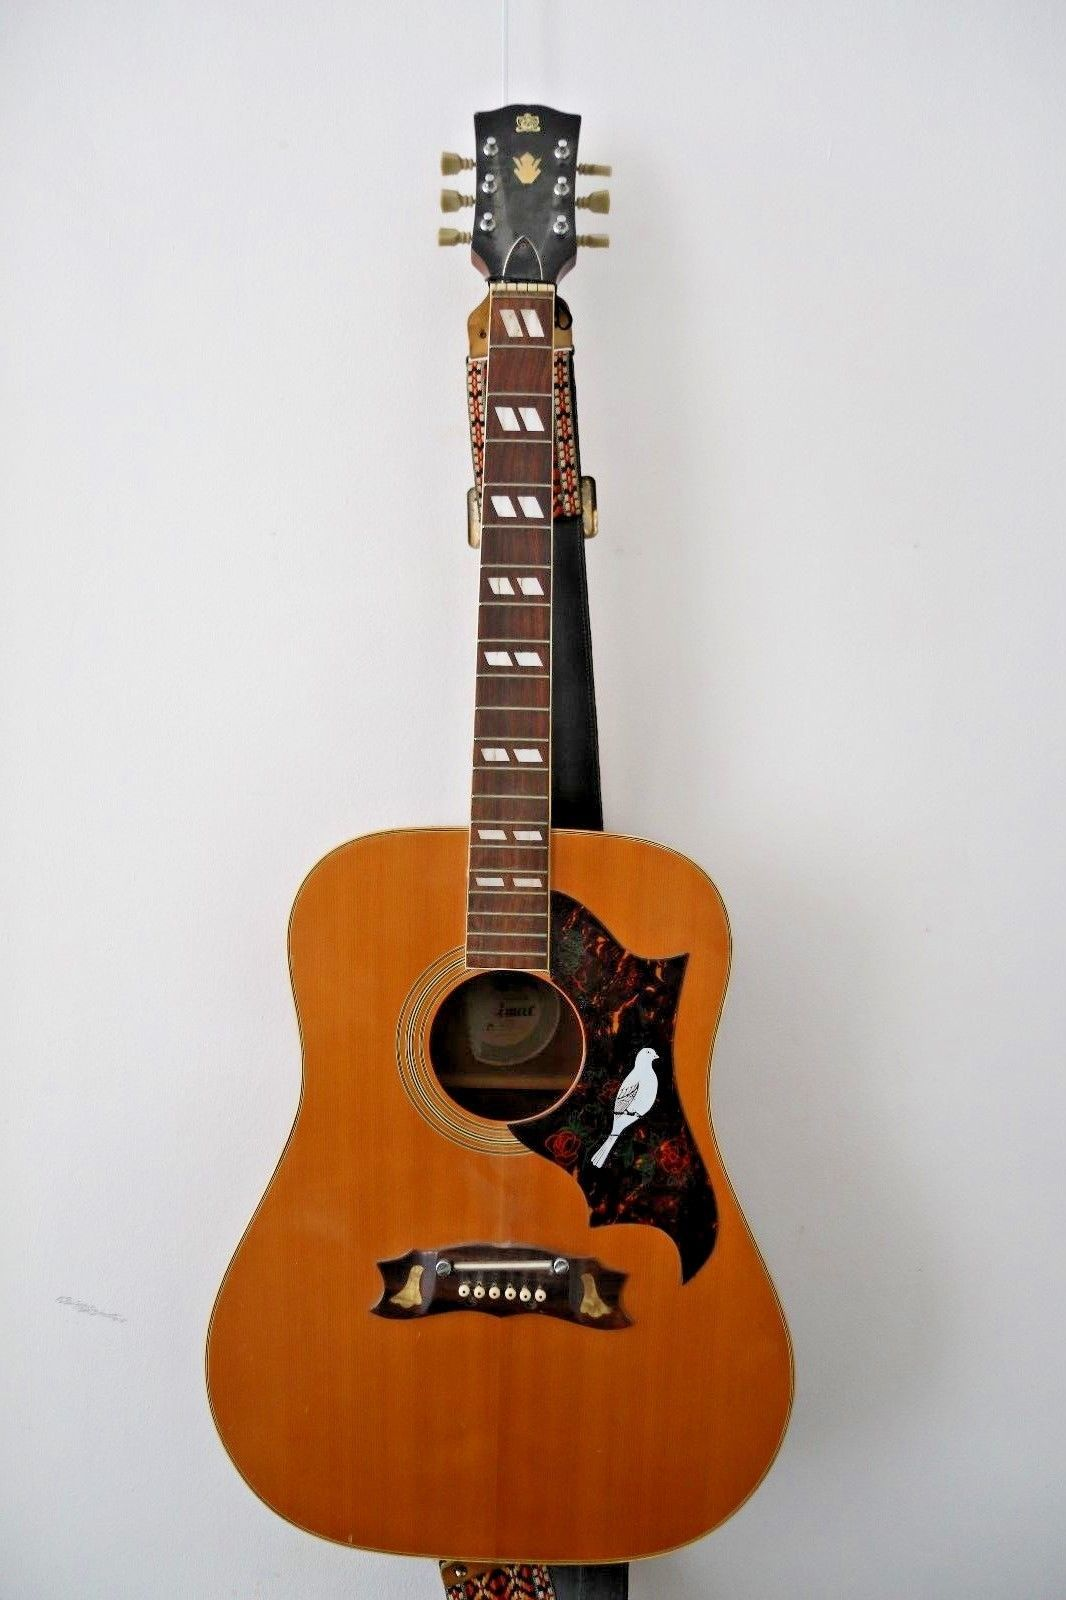 Vintage Gibson Dove Copy by Cimar. Made in Japan